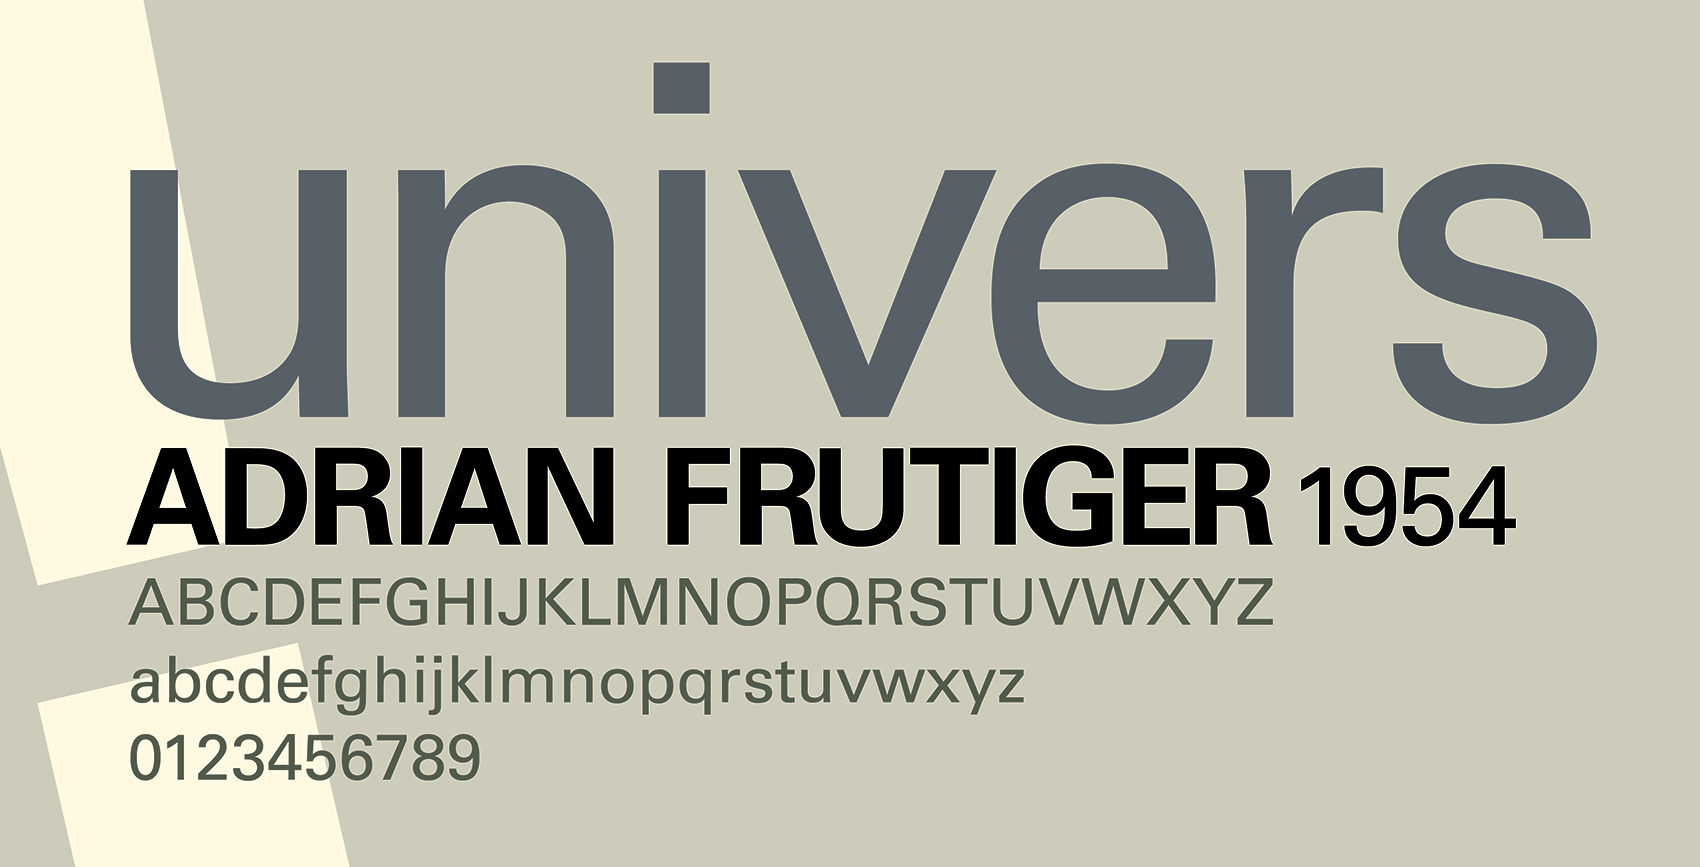 File Name Adrian Frutiger Univers 1956 Poster By Caitlin Gettinger 2014